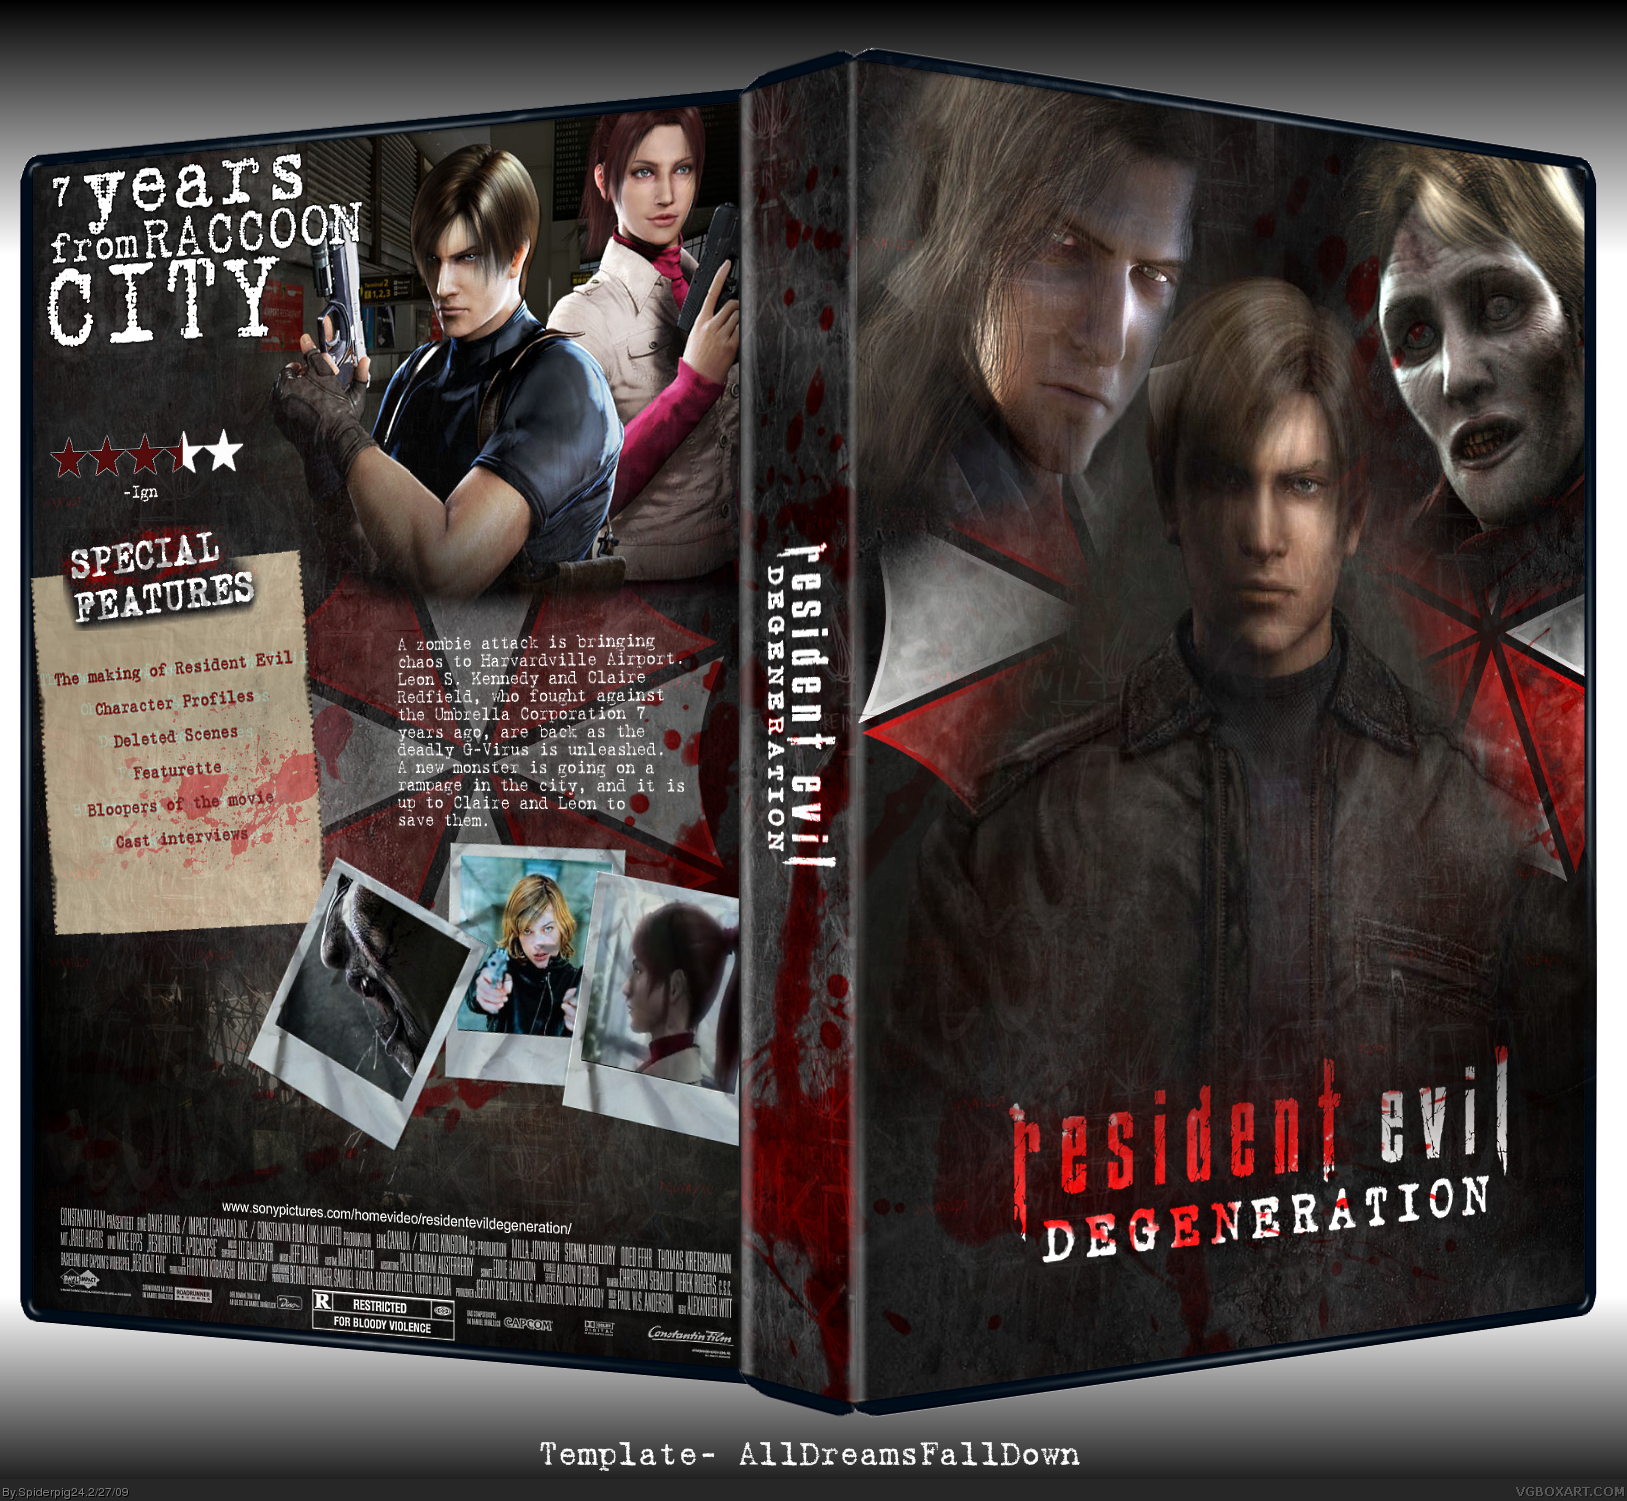 resident evil degeneration movies box art cover by